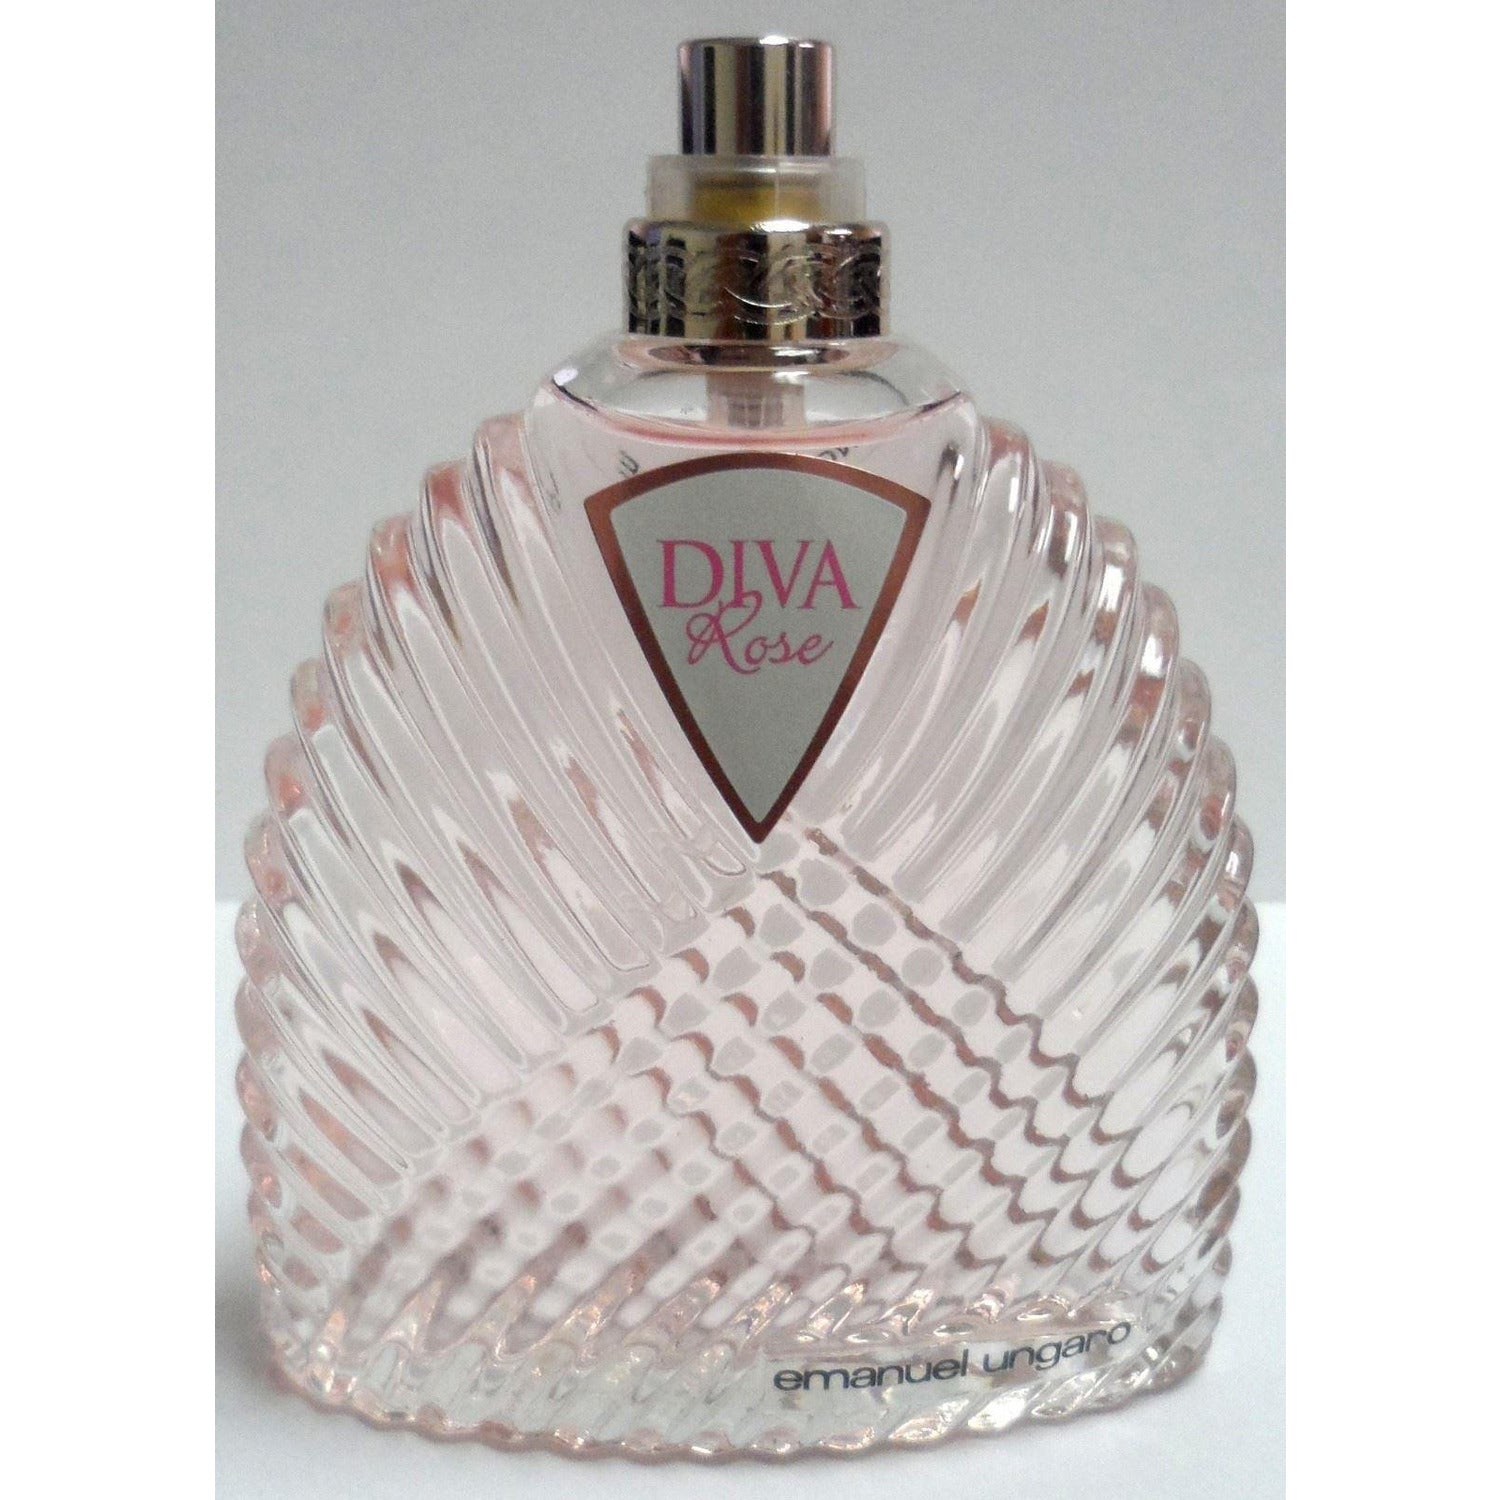 rose-diva-by-emanuel-ungaro-3-3-3-4-oz-edp-new-tester